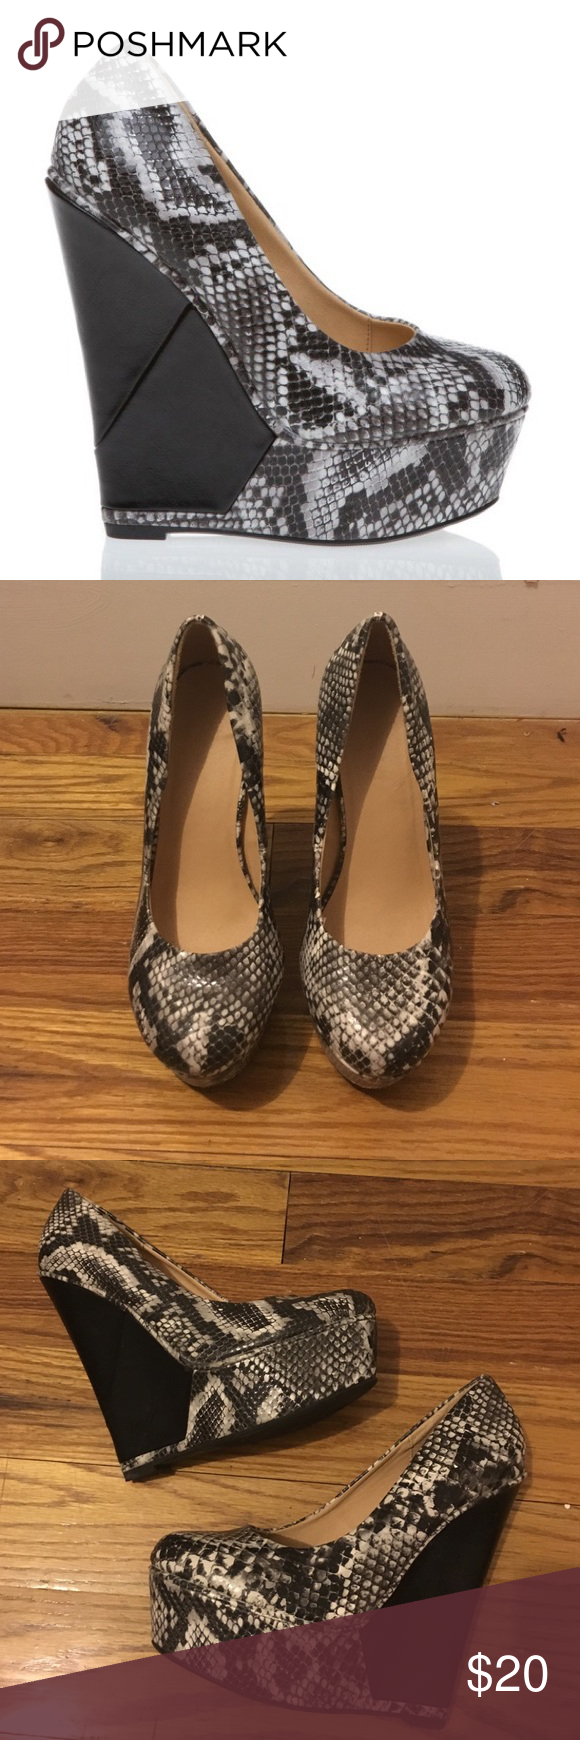 Shoe dazzle Talitha Snake Print Platform Wedges Super high platform wedges. Some minor marking and knicks, but overall great condition shoe. Talitha style. First picture is stock photo. Shoe Dazzle Shoes Platforms